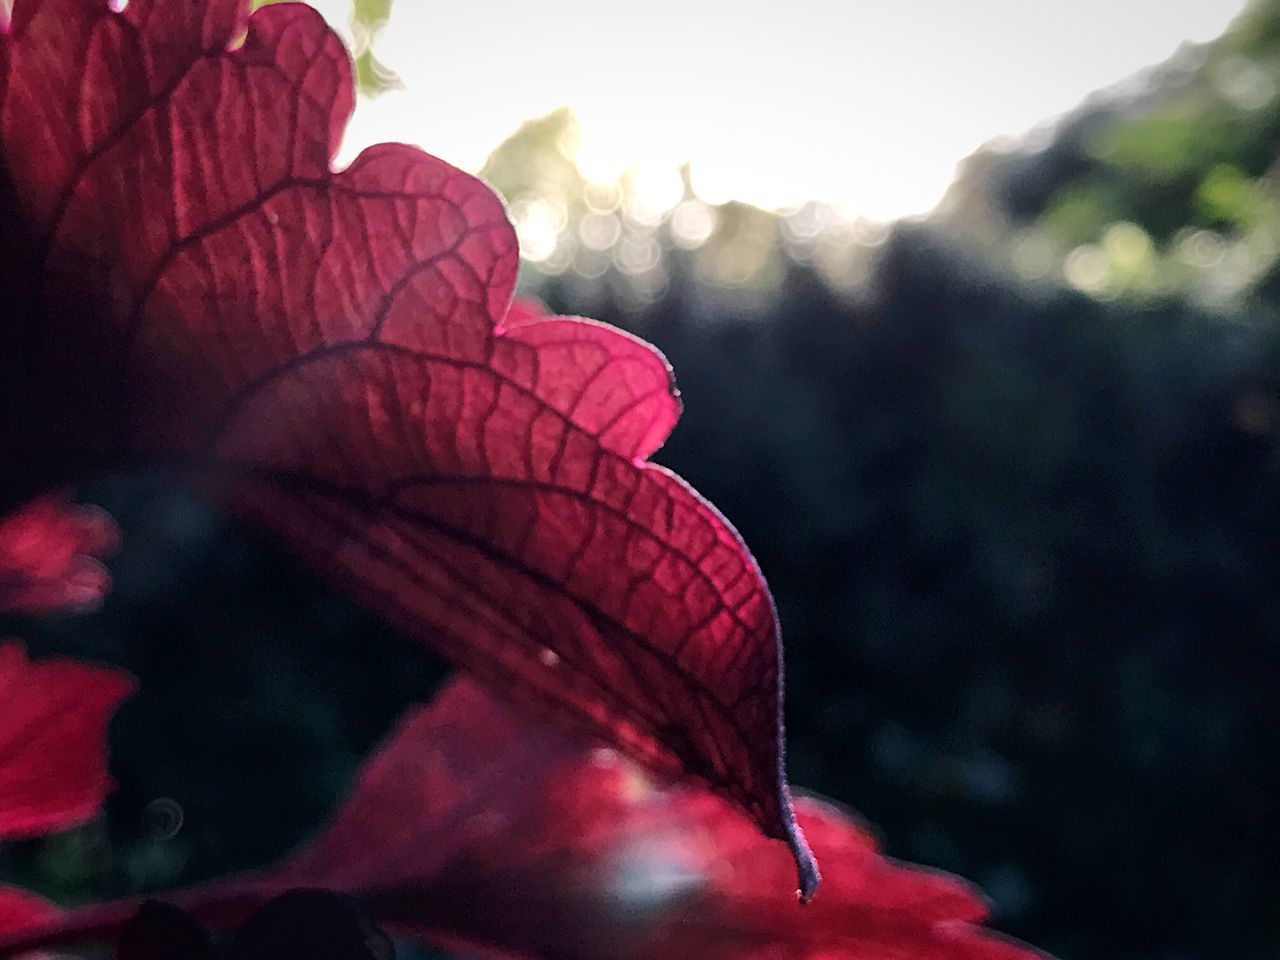 red, nature, beauty in nature, flower, fragility, petal, close-up, leaf, outdoors, growth, flower head, day, plant, no people, focus on foreground, pink color, freshness, bougainvillea, hibiscus, water